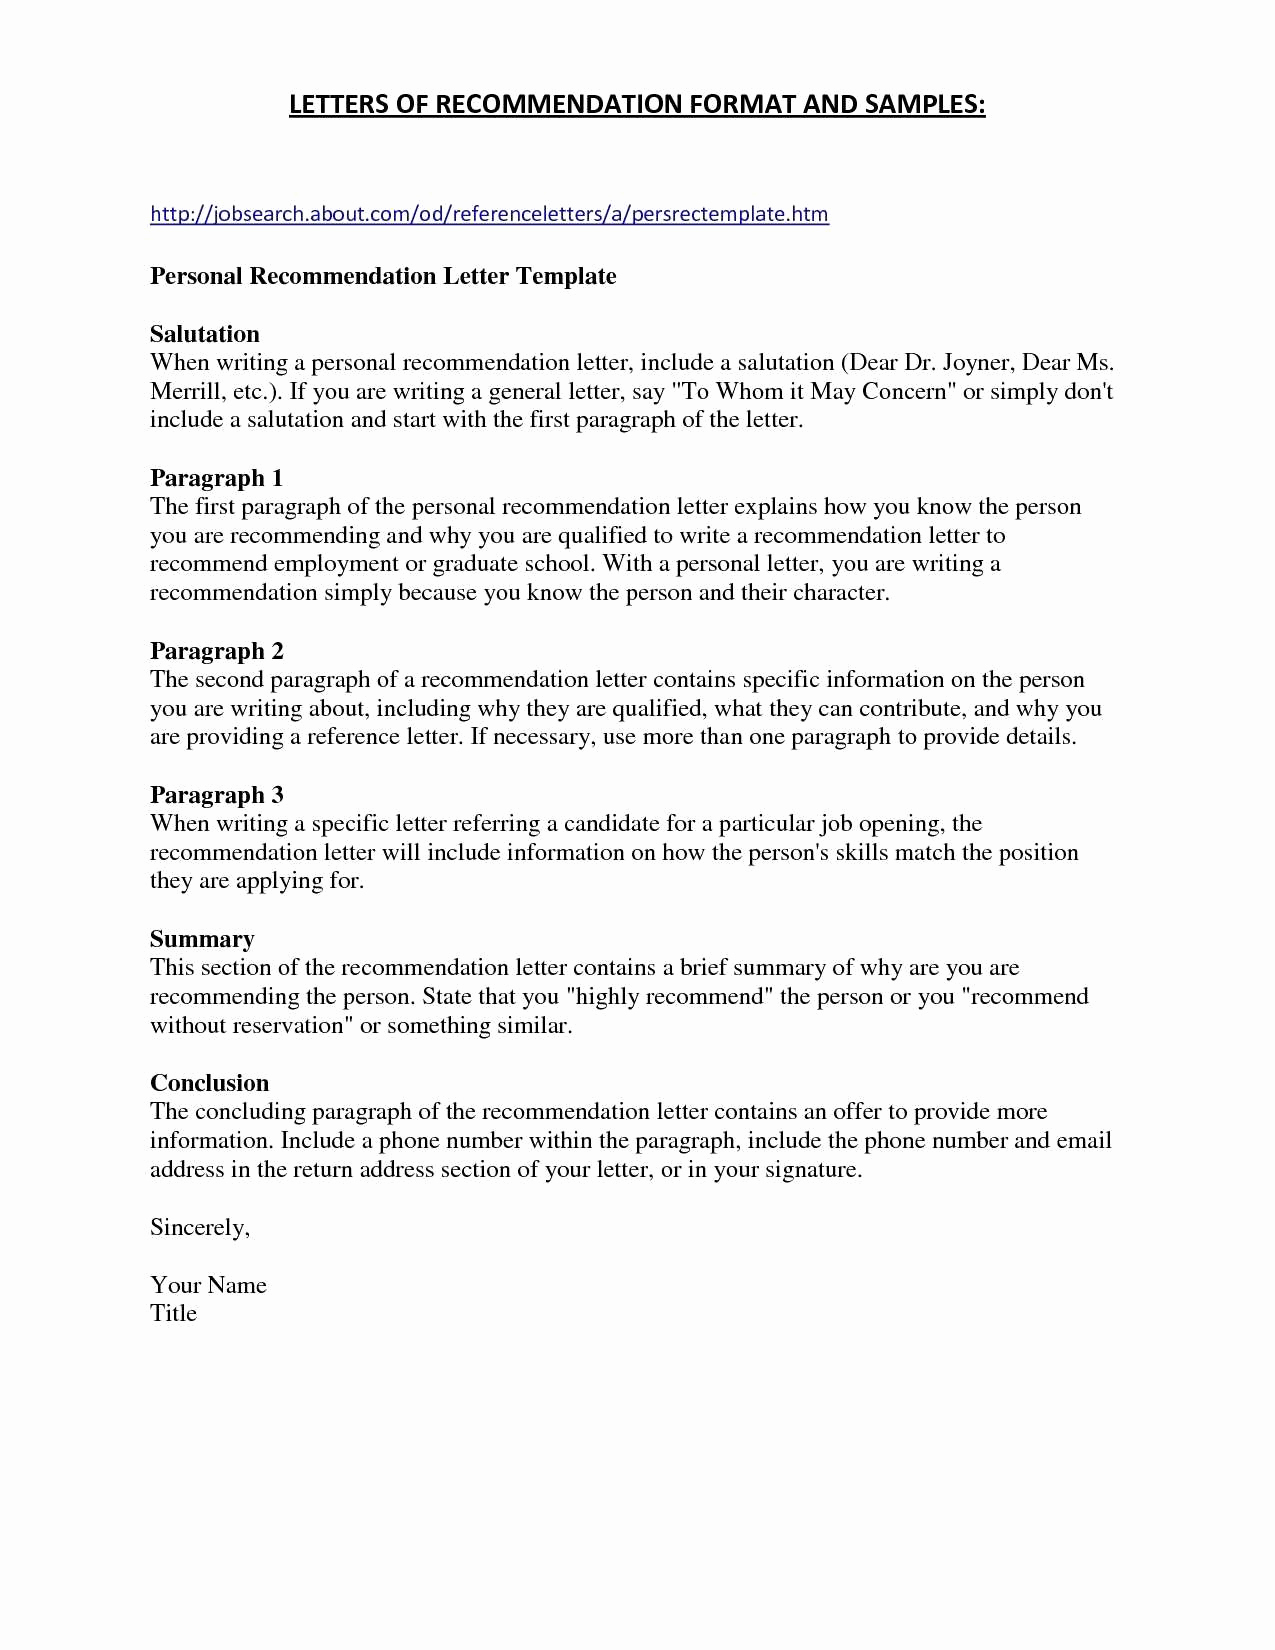 Template for Ending Lease Letter - Rental Agreements Templates Awesome Lease Termination Letter